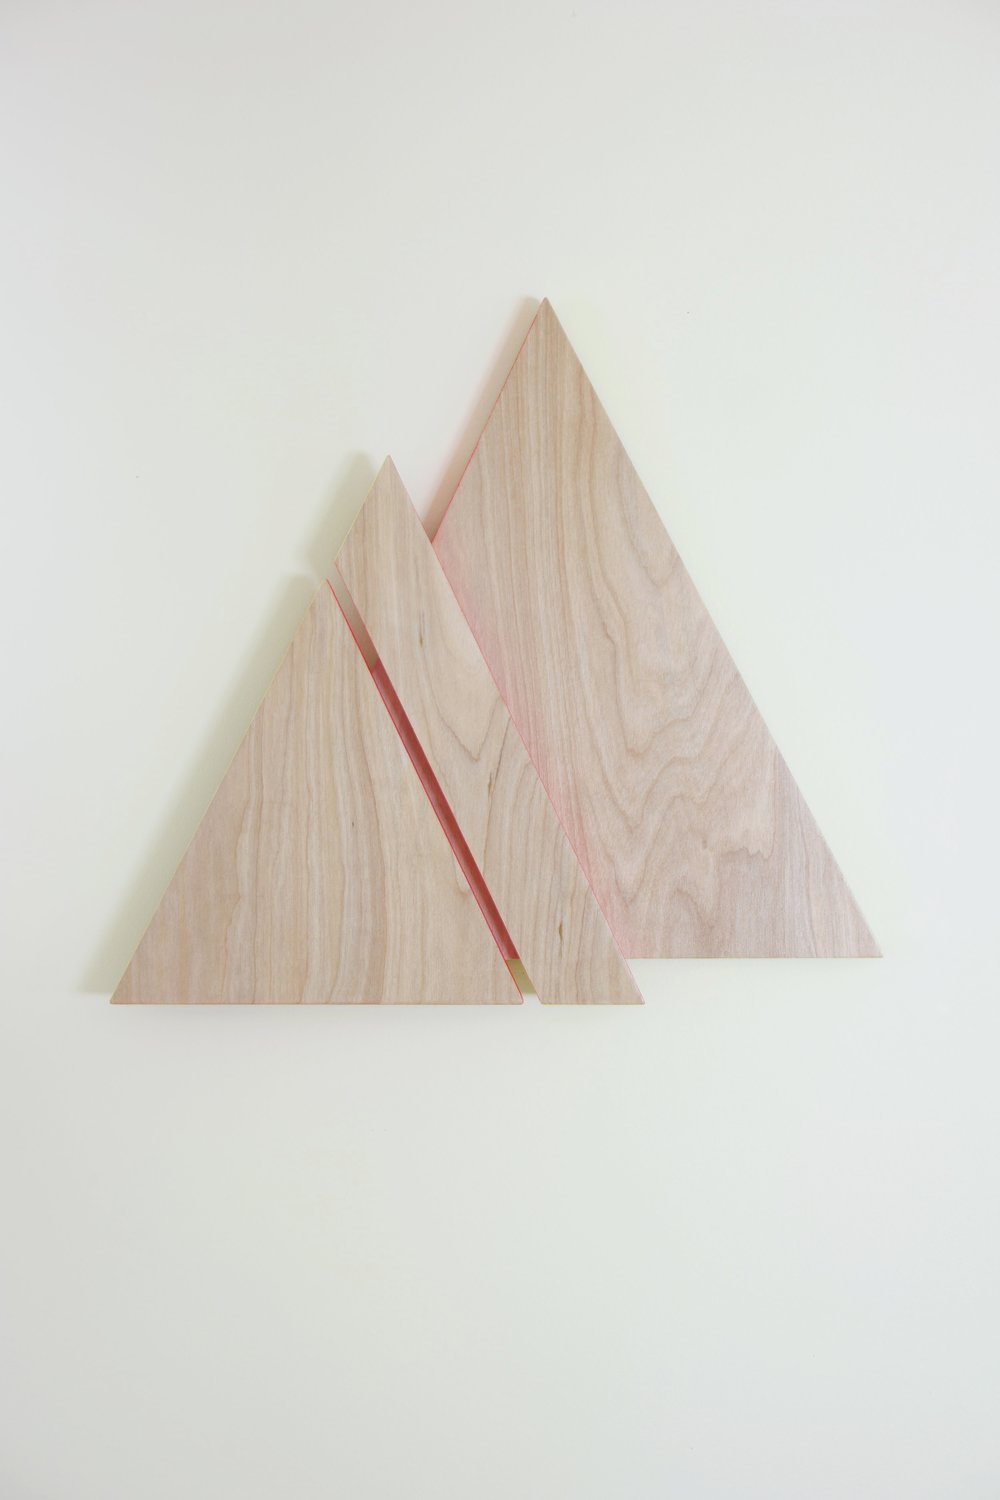 MTN PEAKS   2018    wood, acrylic paint, urethane    19 x 1.5 x 17.5 inches    see store tab for price